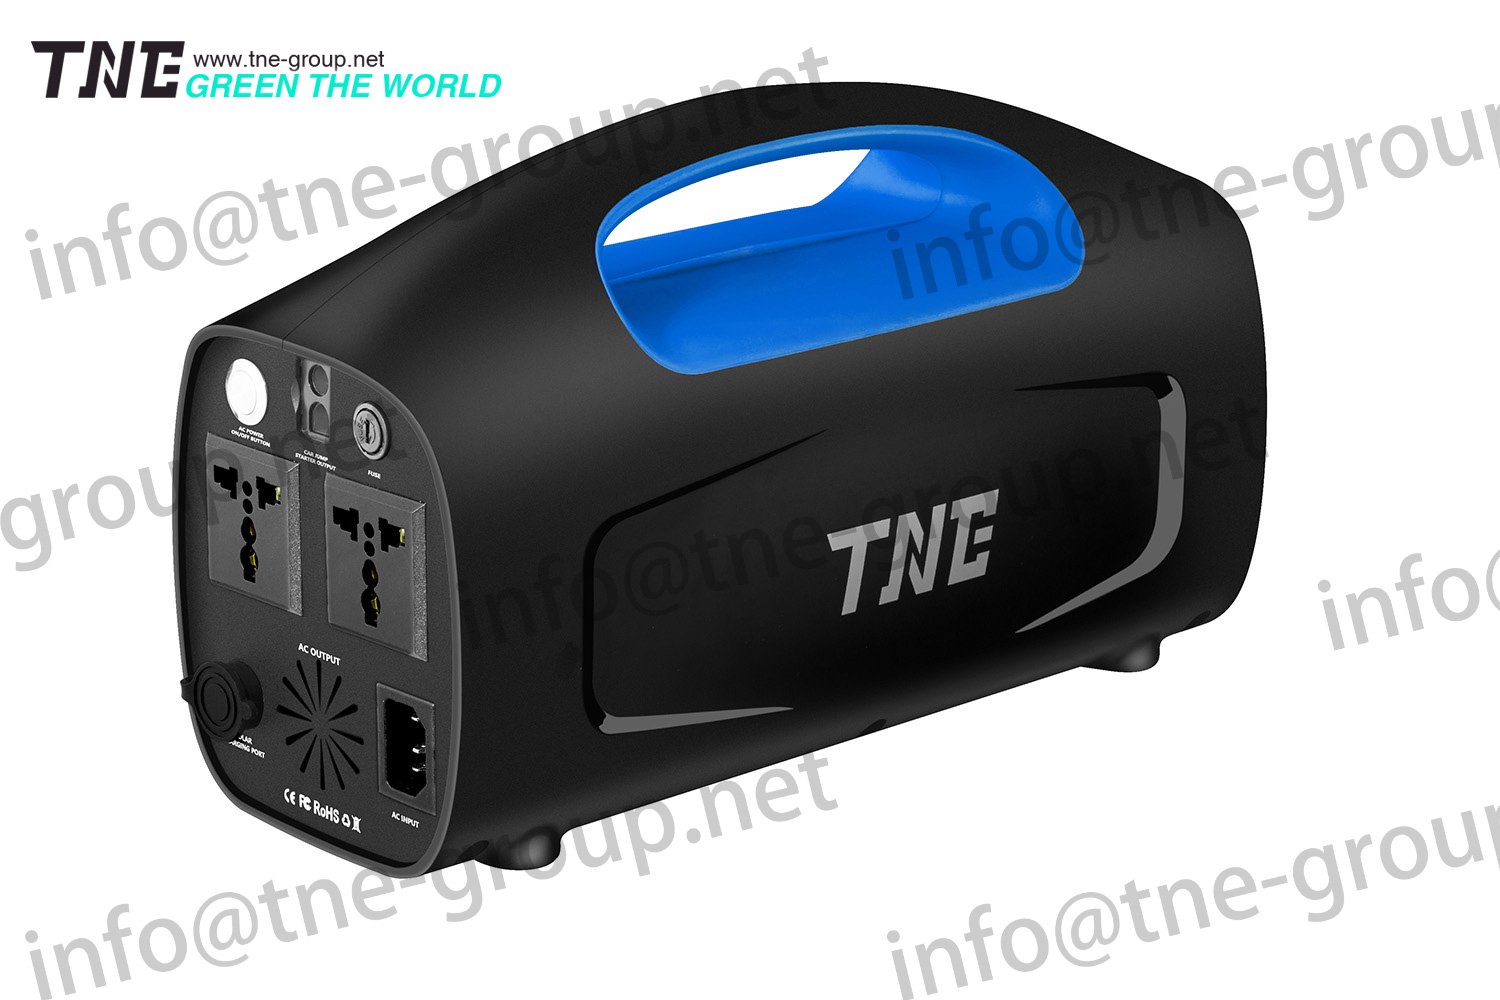 TNE Short circuit protection ups and inverters ups with VOP protection